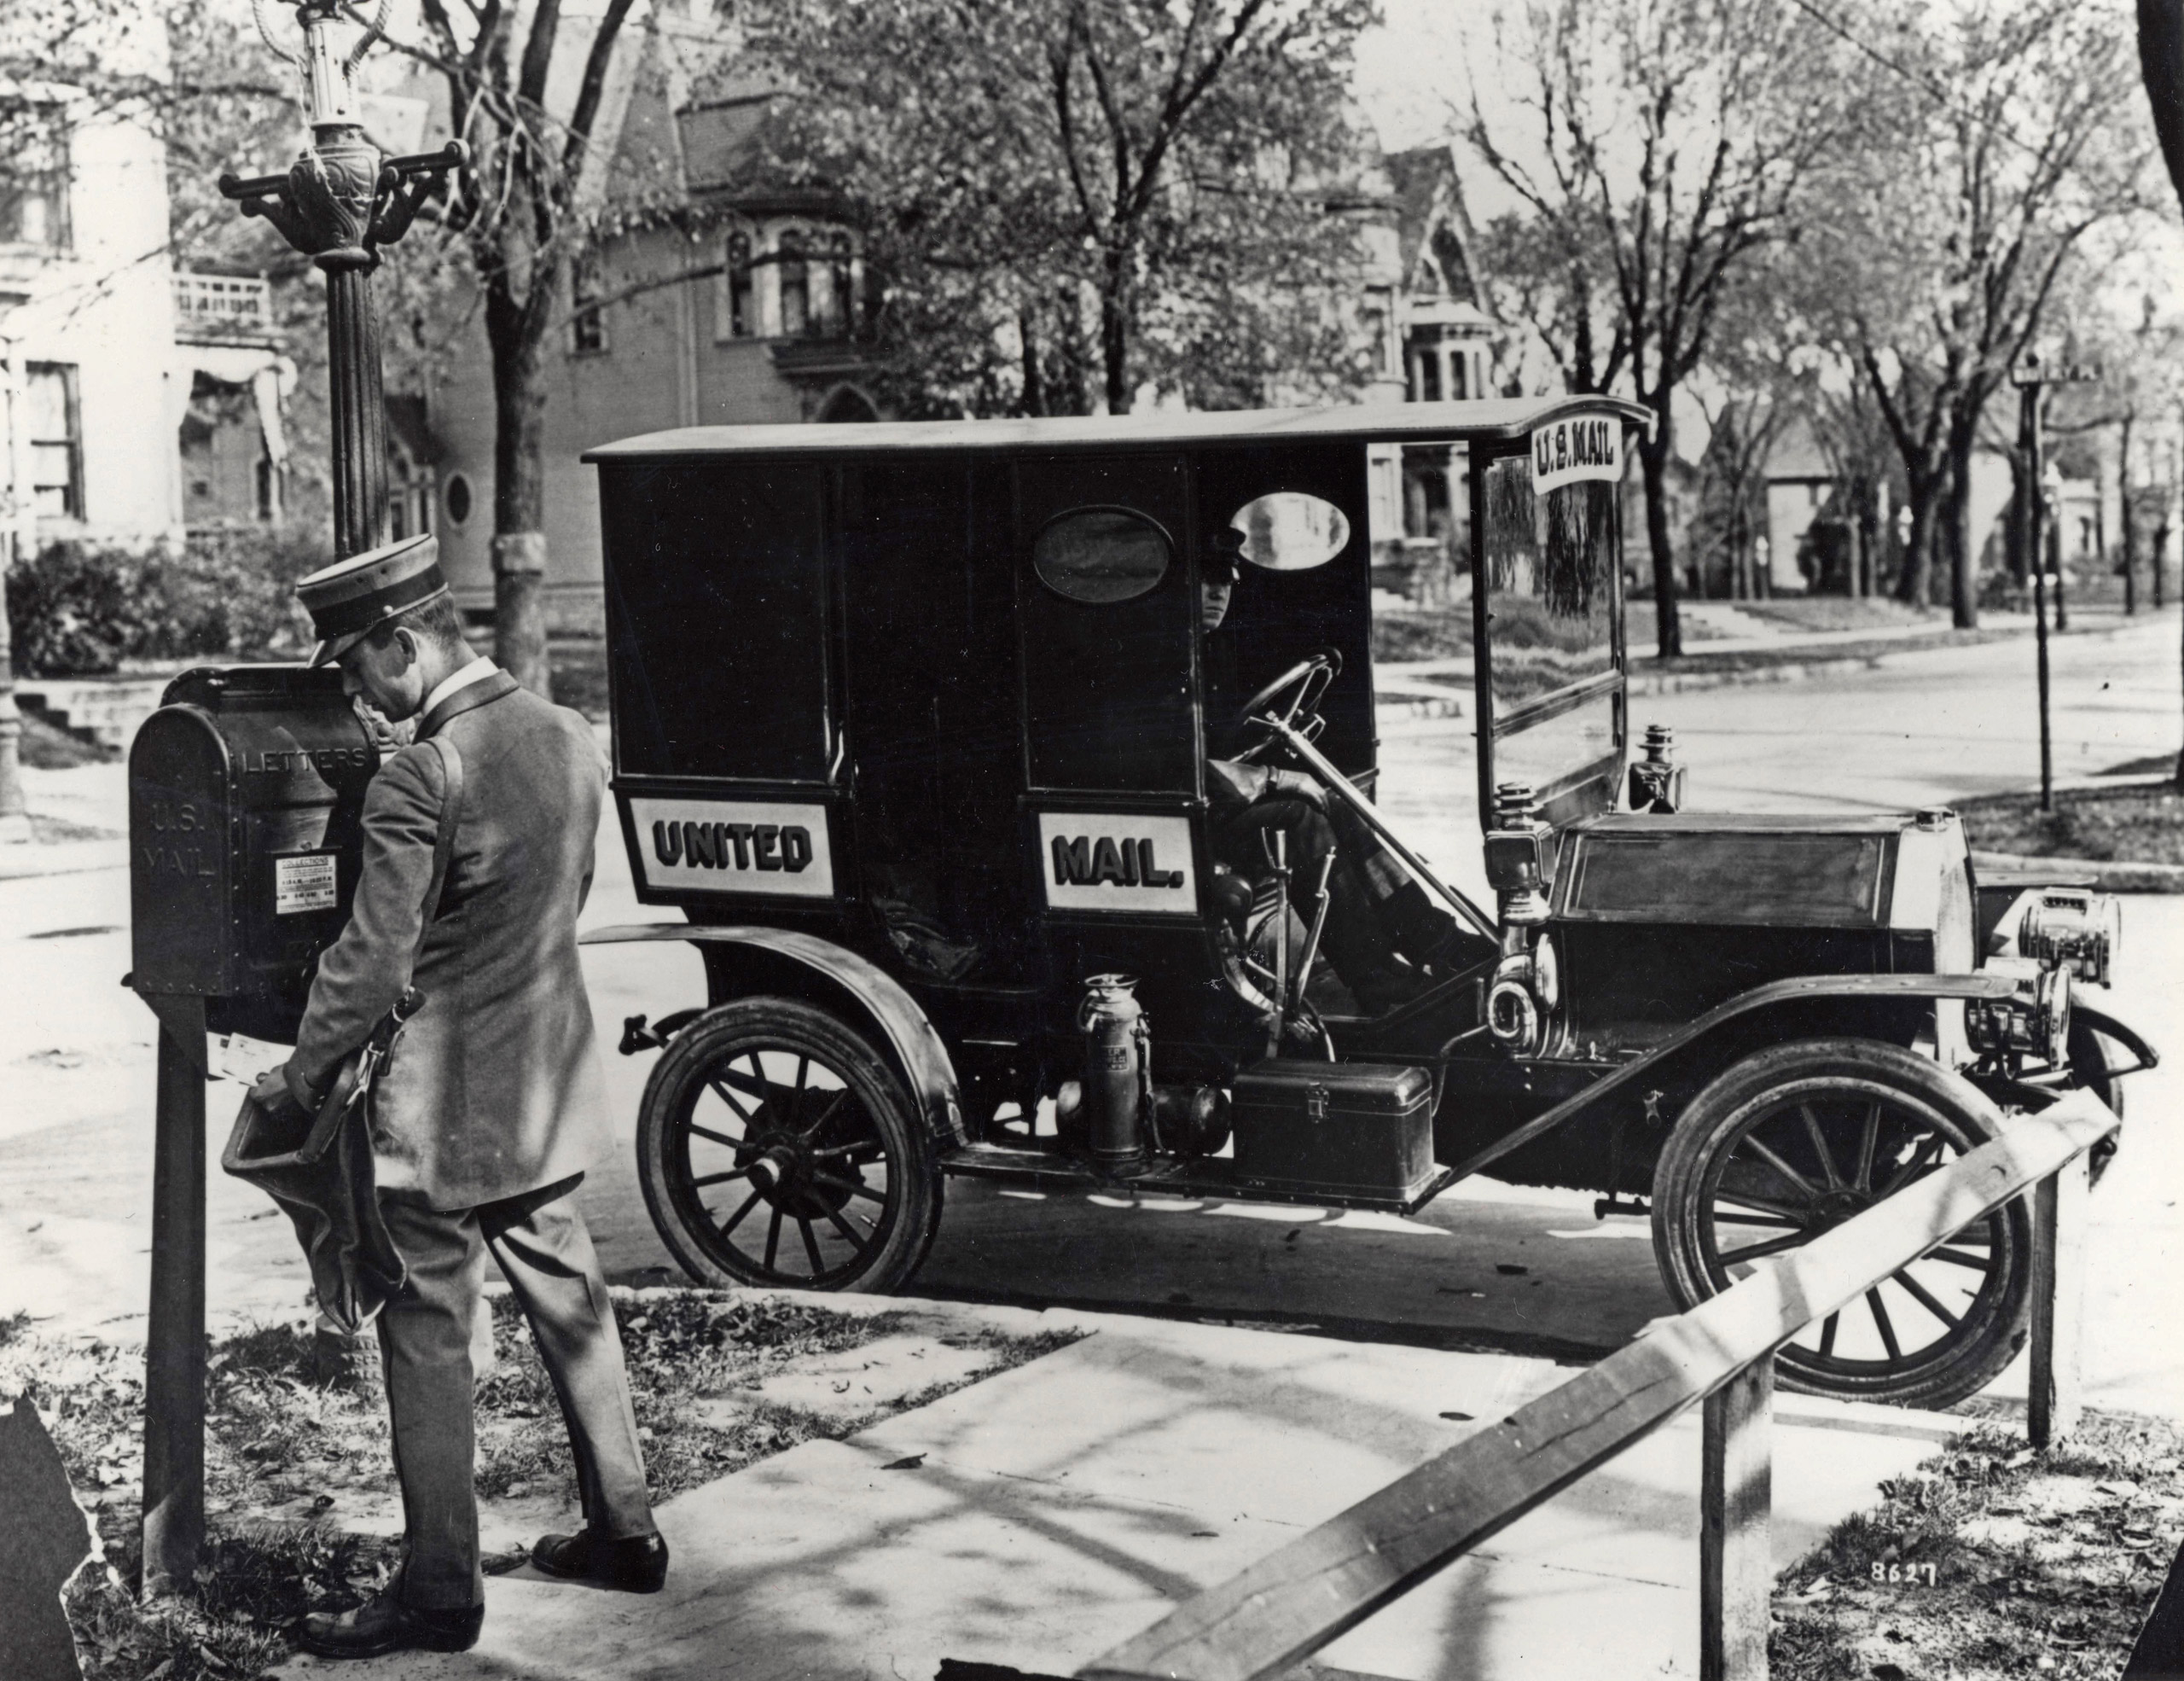 A letter carrier collecting mail from a sidewalk mail collection box. His mail truck is parked at the curb. 1915.